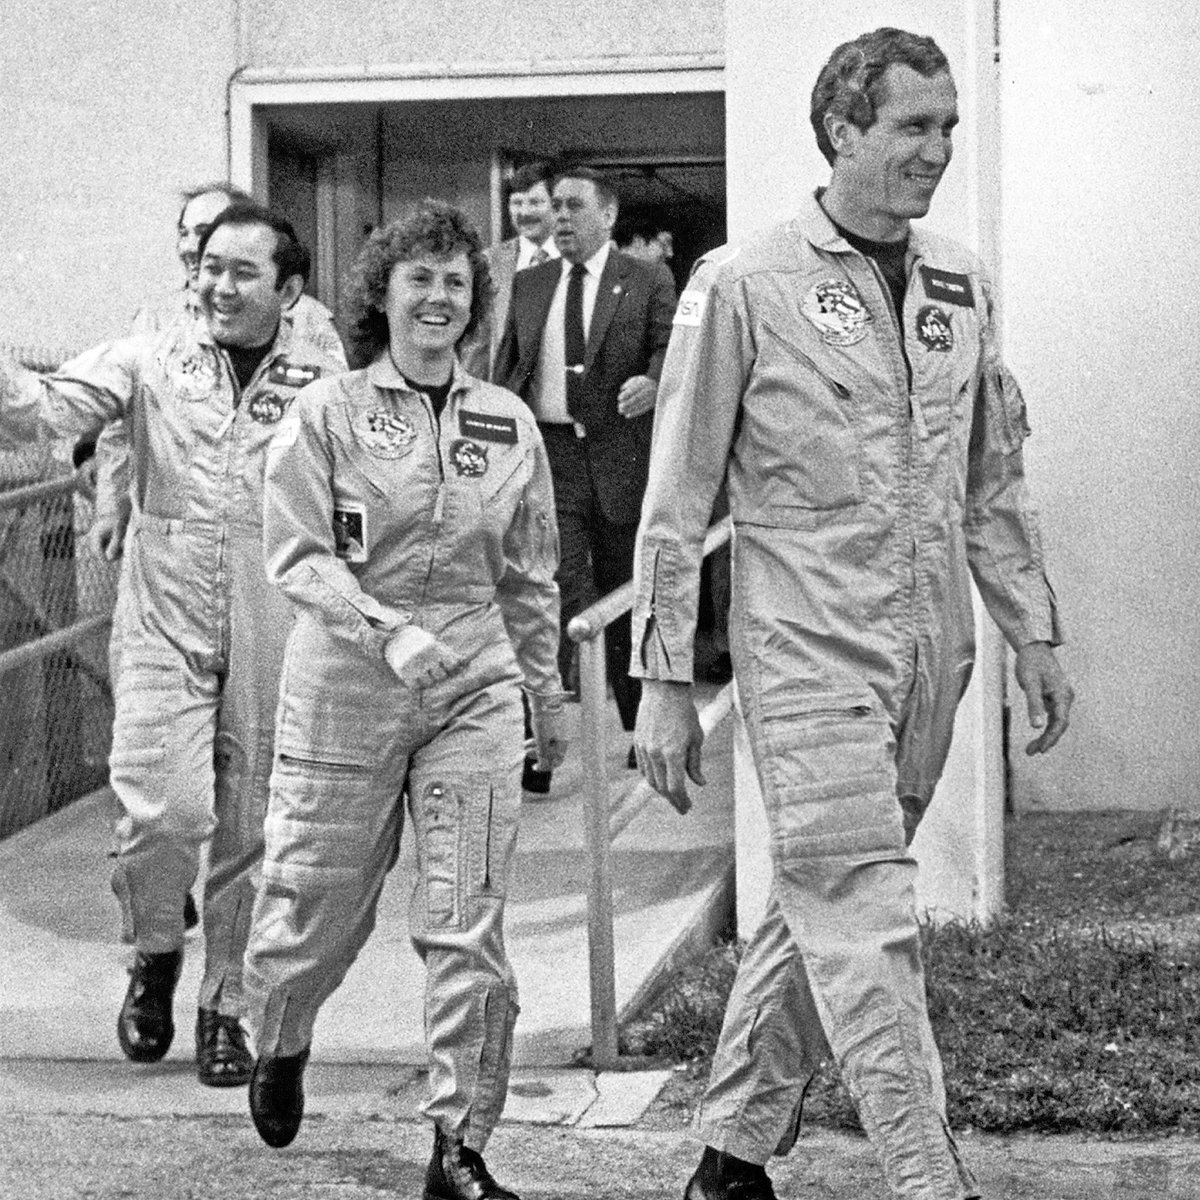 OTD 35 years ago😢#space shuttle 51L #Challenger. I'll #neverforget their smiles and their spring in their step. @NASAKennedy